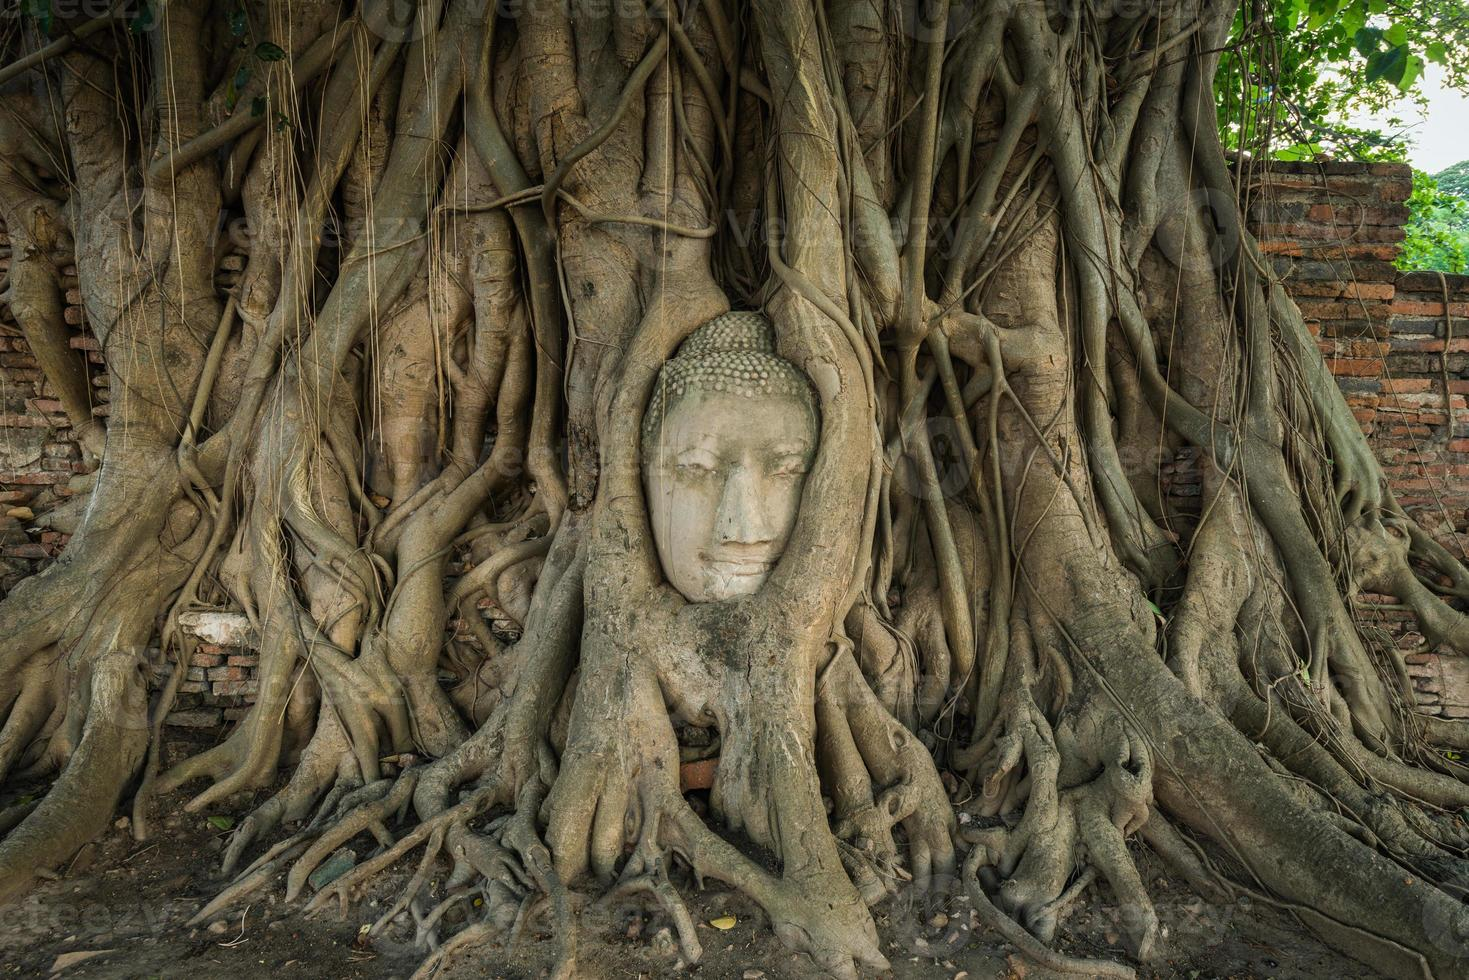 Stone head of Buddha in the embrace of bodhi tree's roots photo